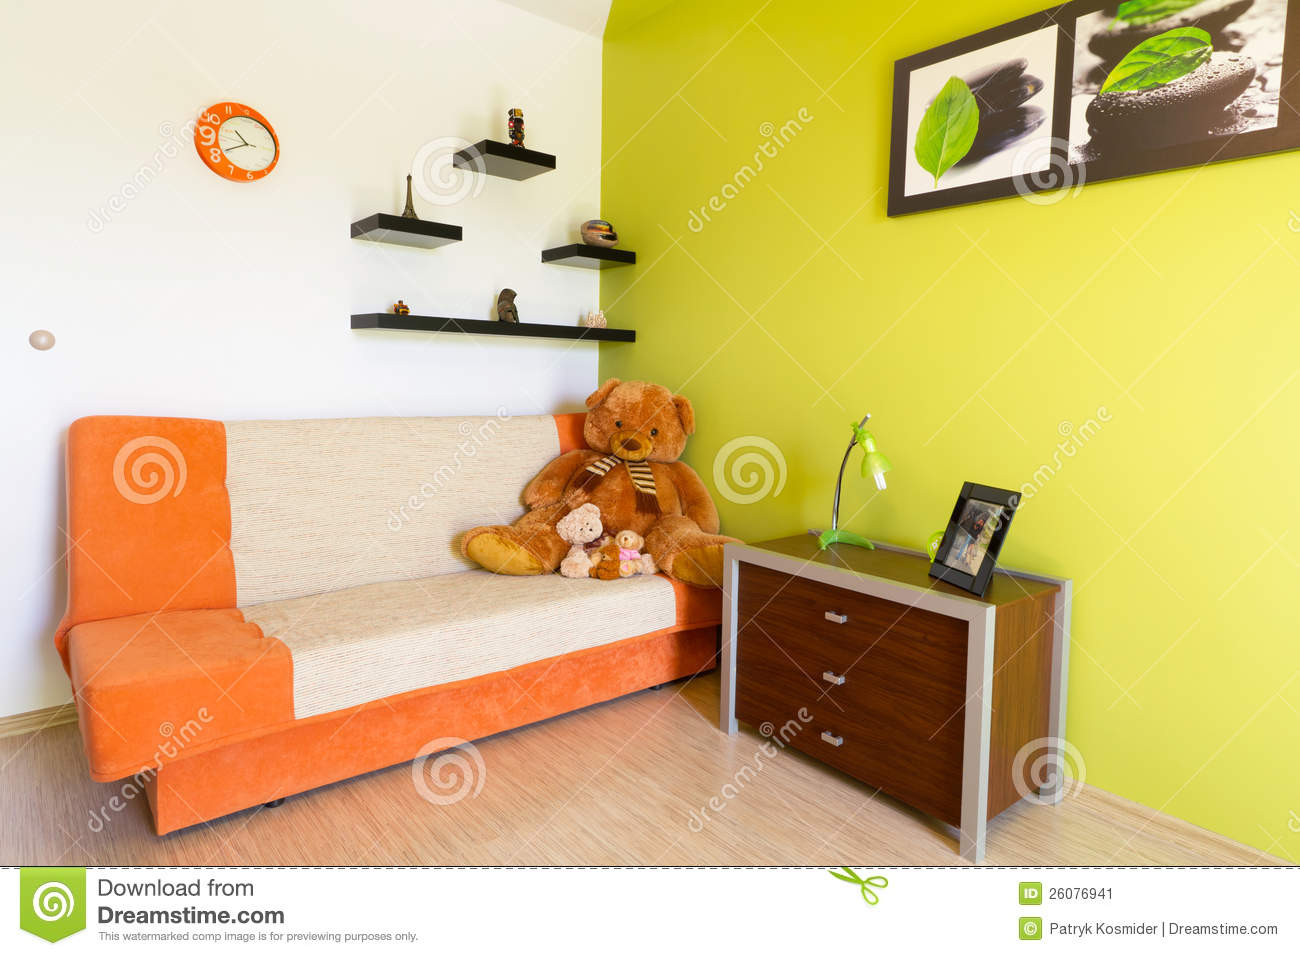 White And Green Bedroom With Orange Sofa Stock Image - Image ...